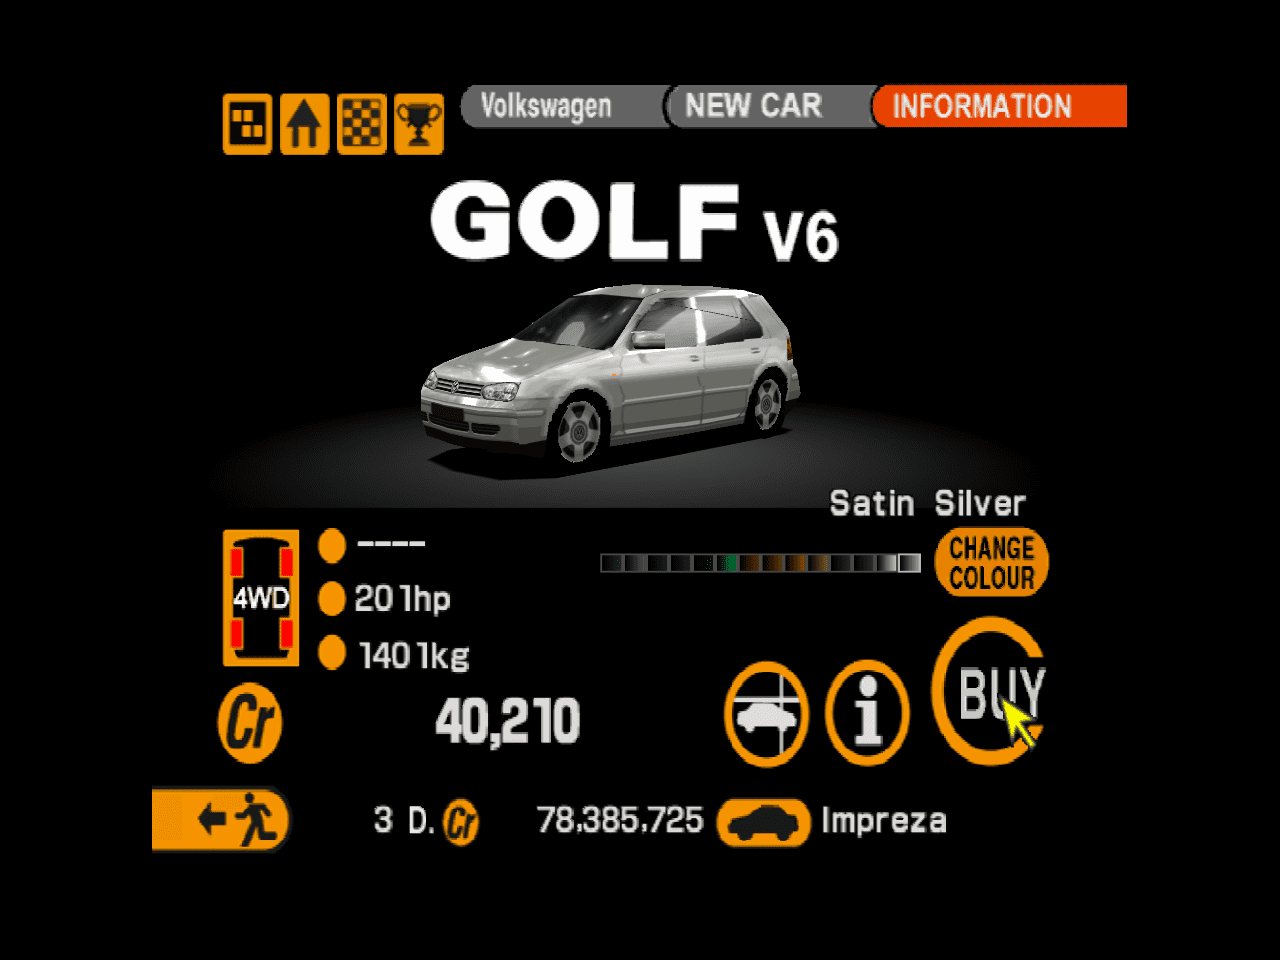 Mod] Gran Turismo 2 plus (bug fixes, restored content and